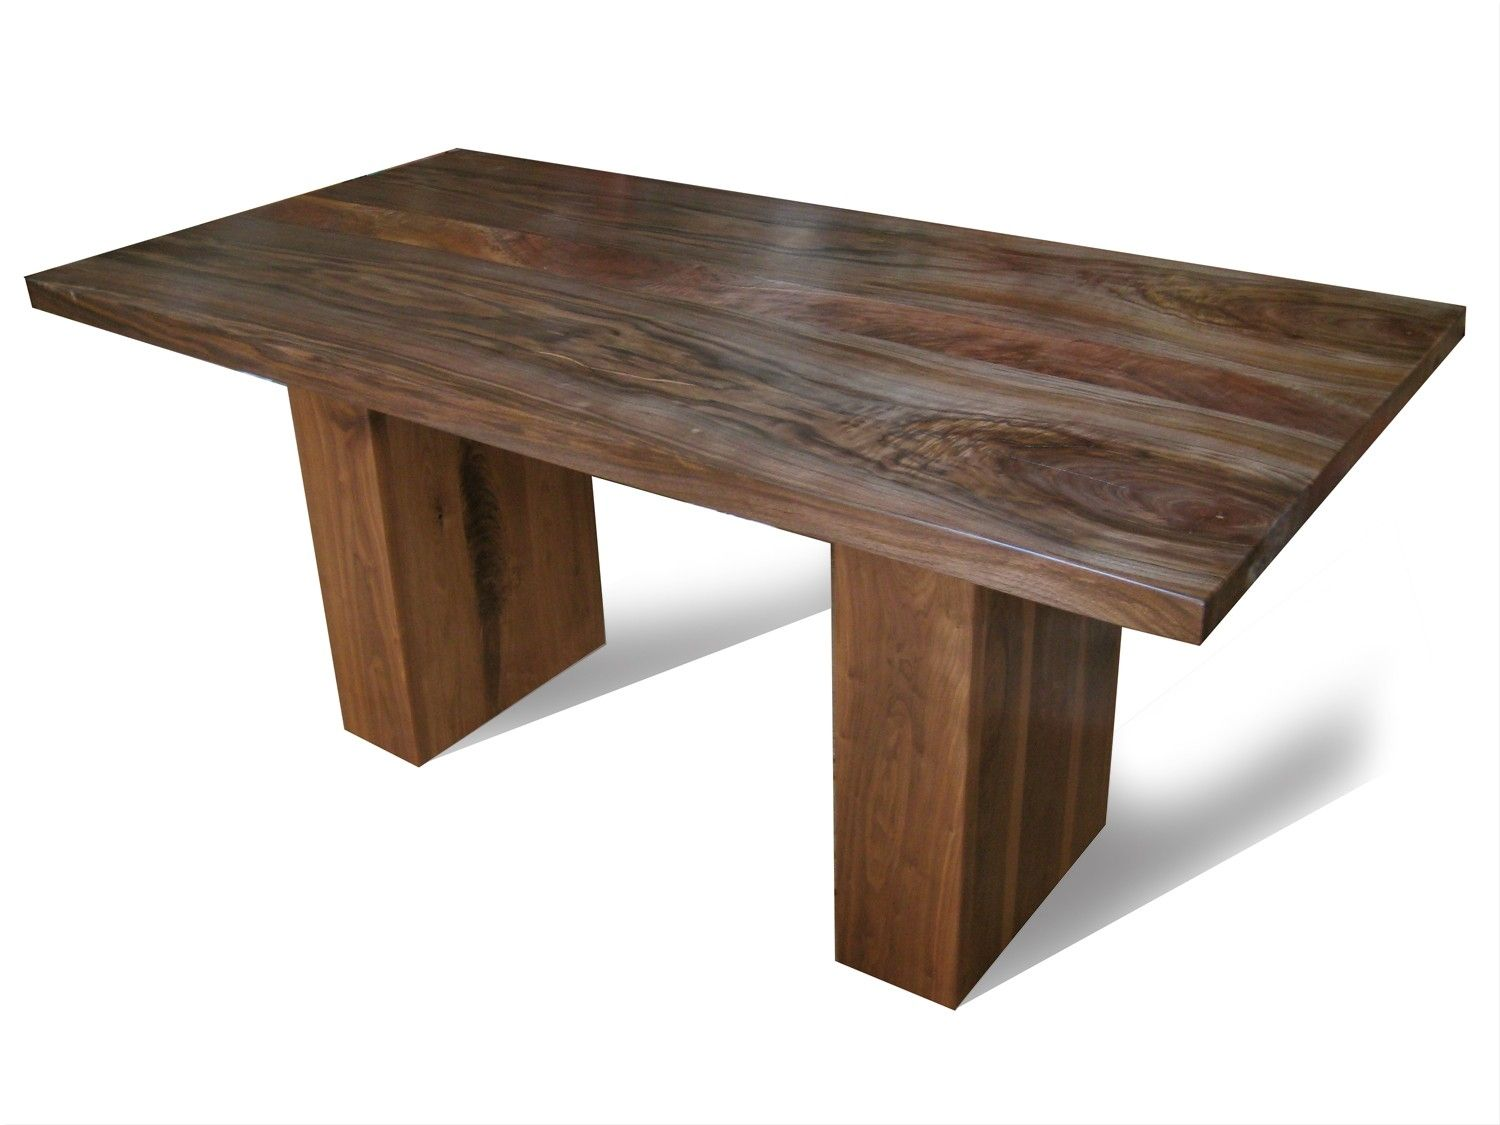 Custom made walnut dining table with pedestal legs by fix studio - Pedestal kitchen tables ...